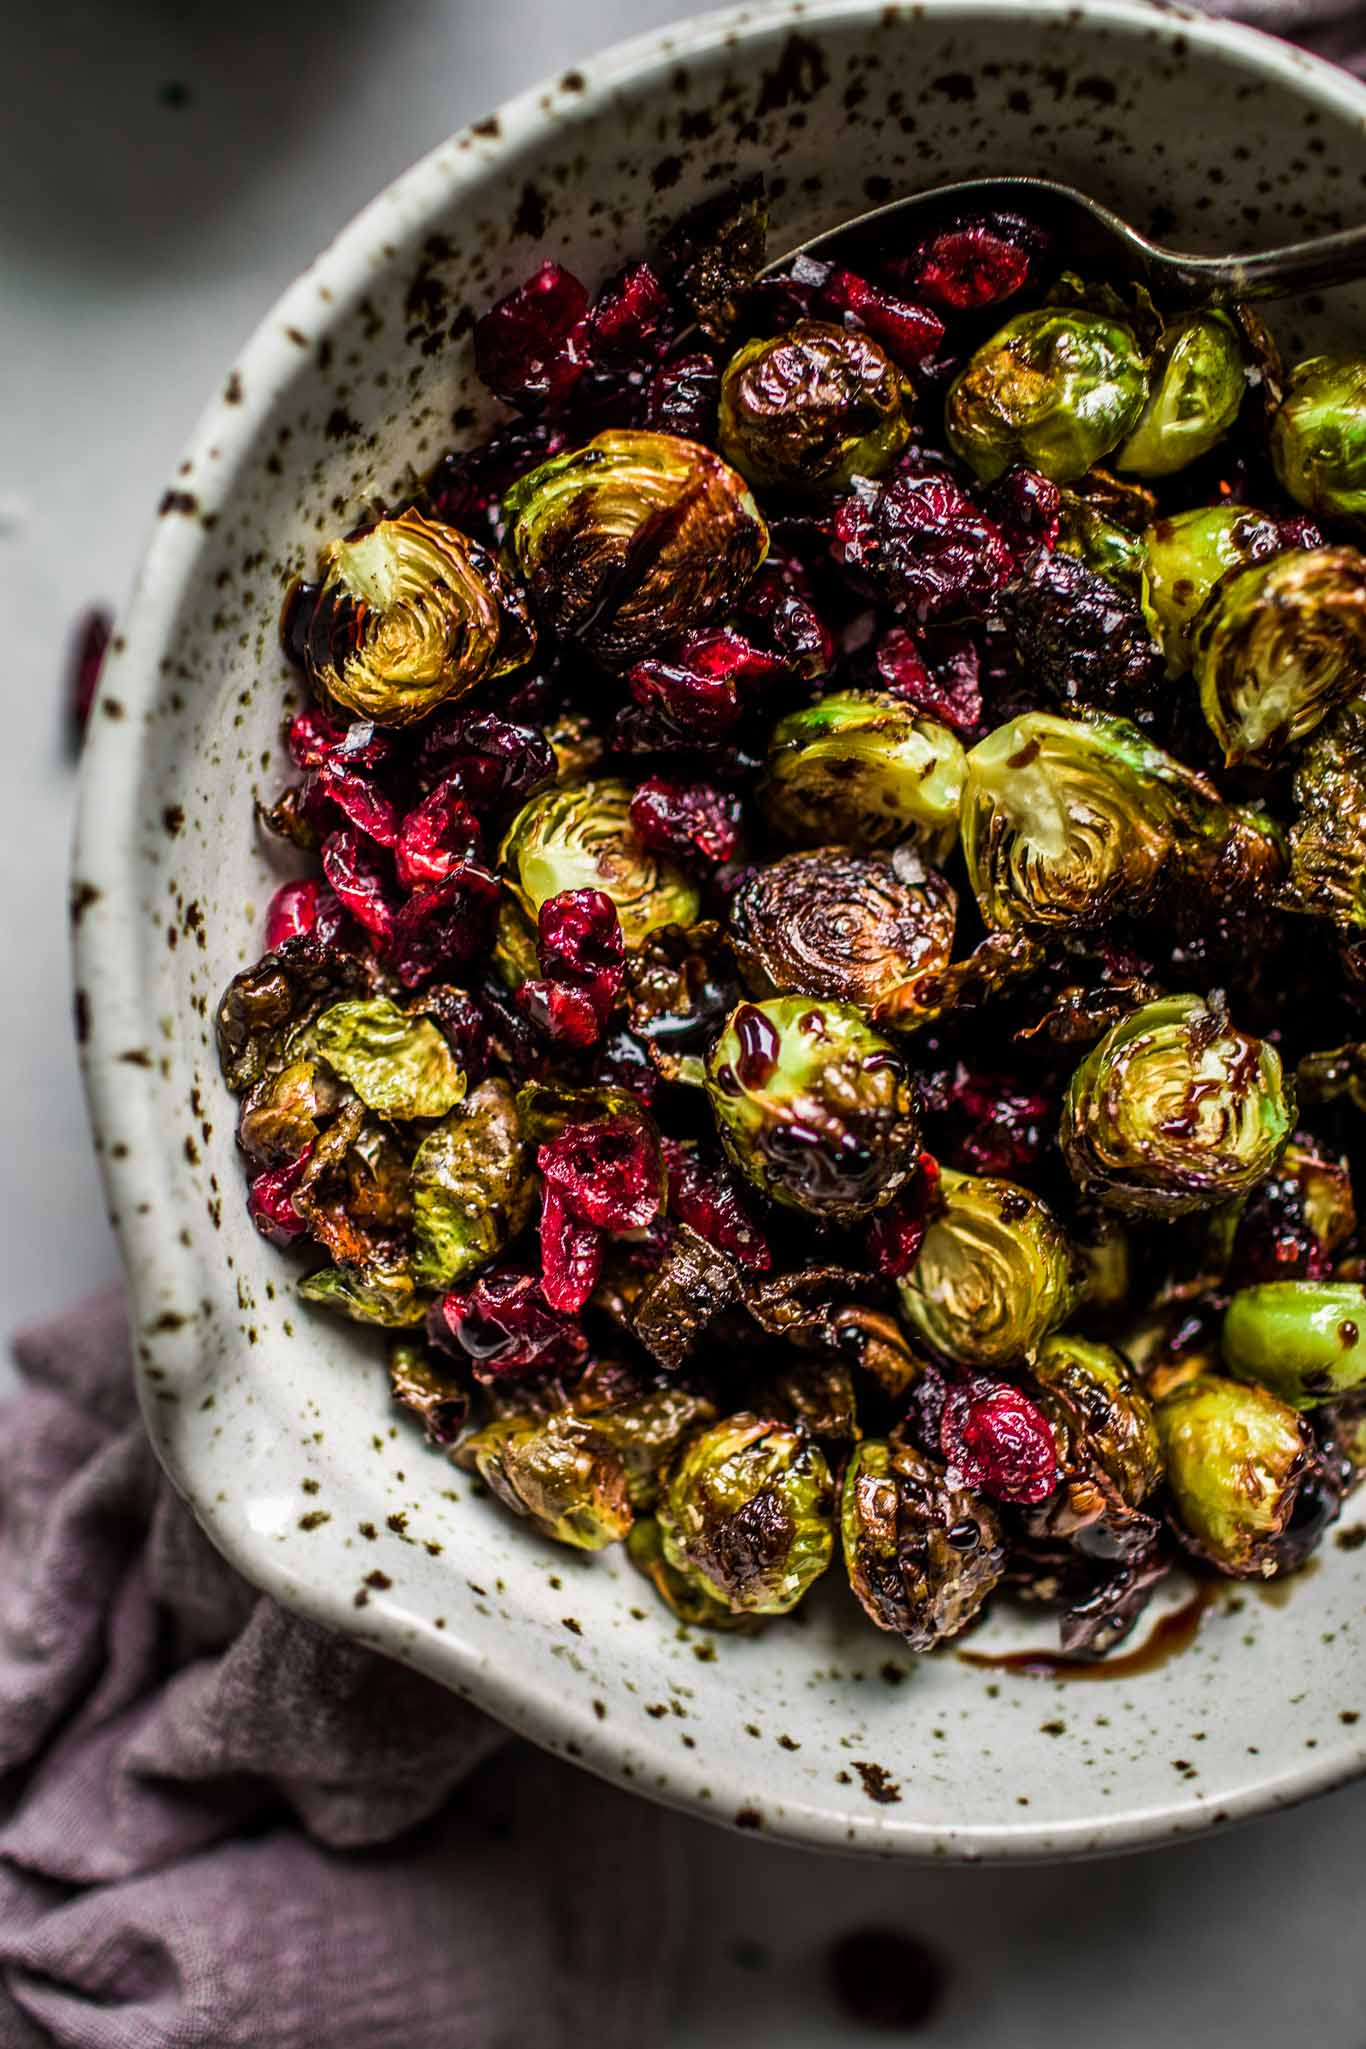 Overhead close up of bowl of roasted brussels sprouts with balsamic reduction & cranberries.